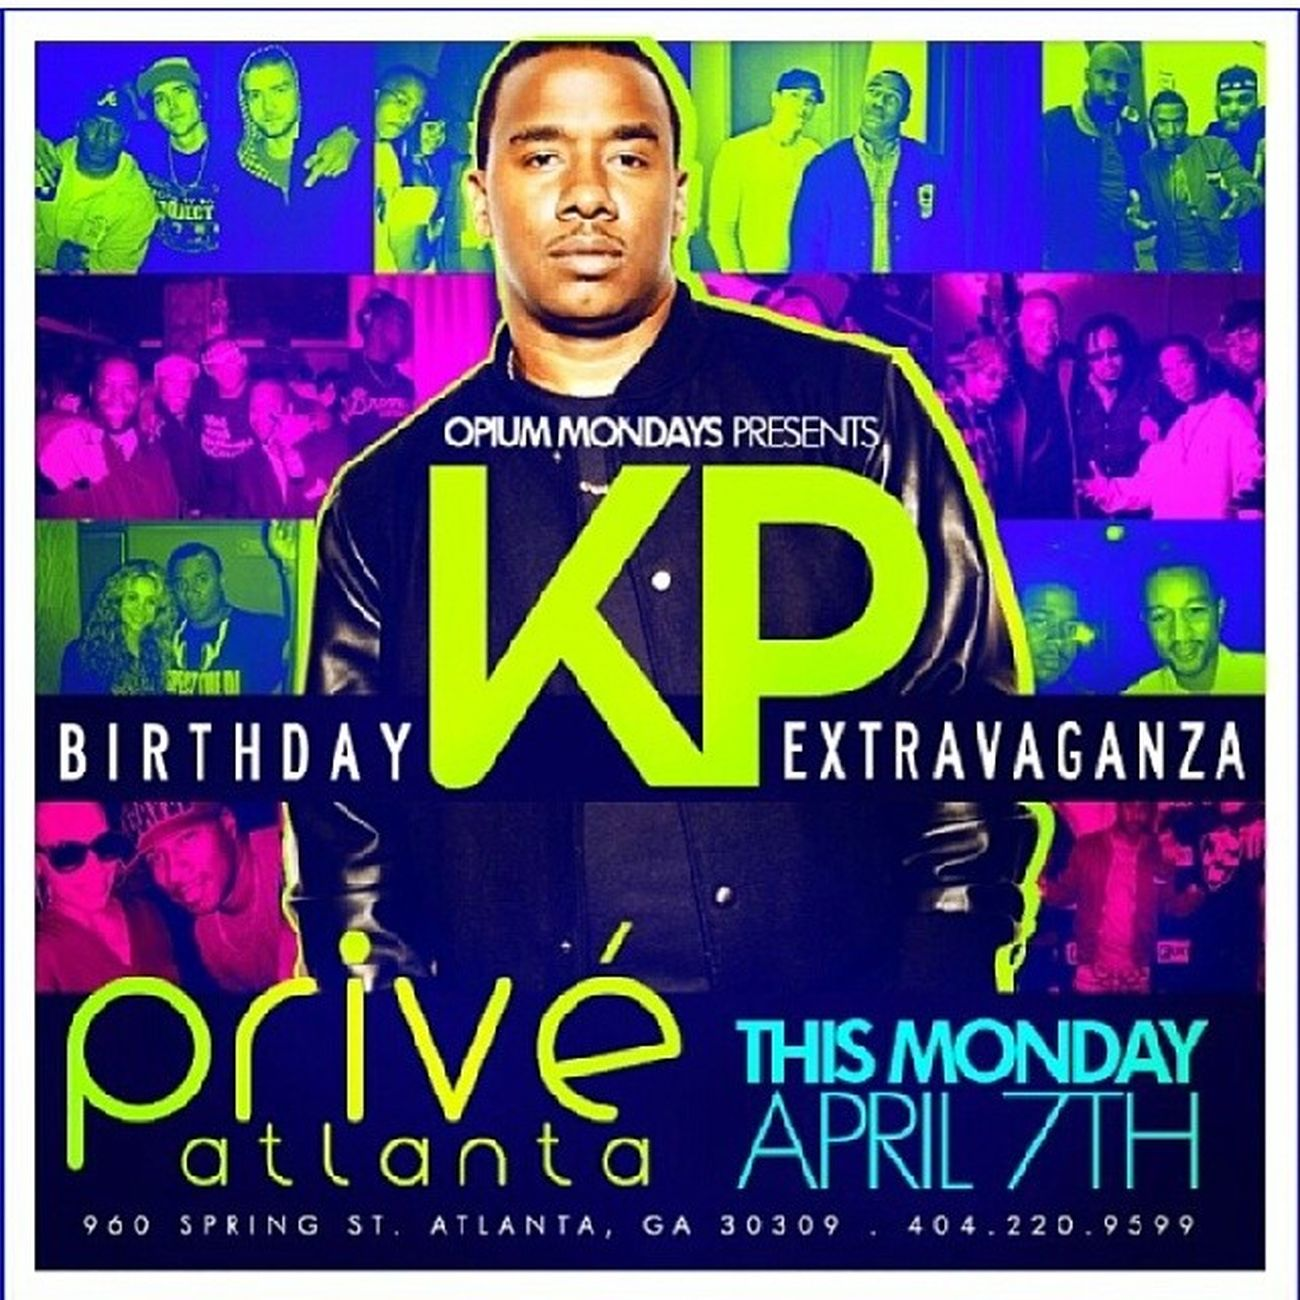 I came up Watching this guy take any situation and stay on top A&R DUNGEONFAMILY 1stGen !!!! Tonight after the GAME Prive !!! Shouts to @kawanprather @bigpat_basementent @basemententatl @certifieddeshad !!!!